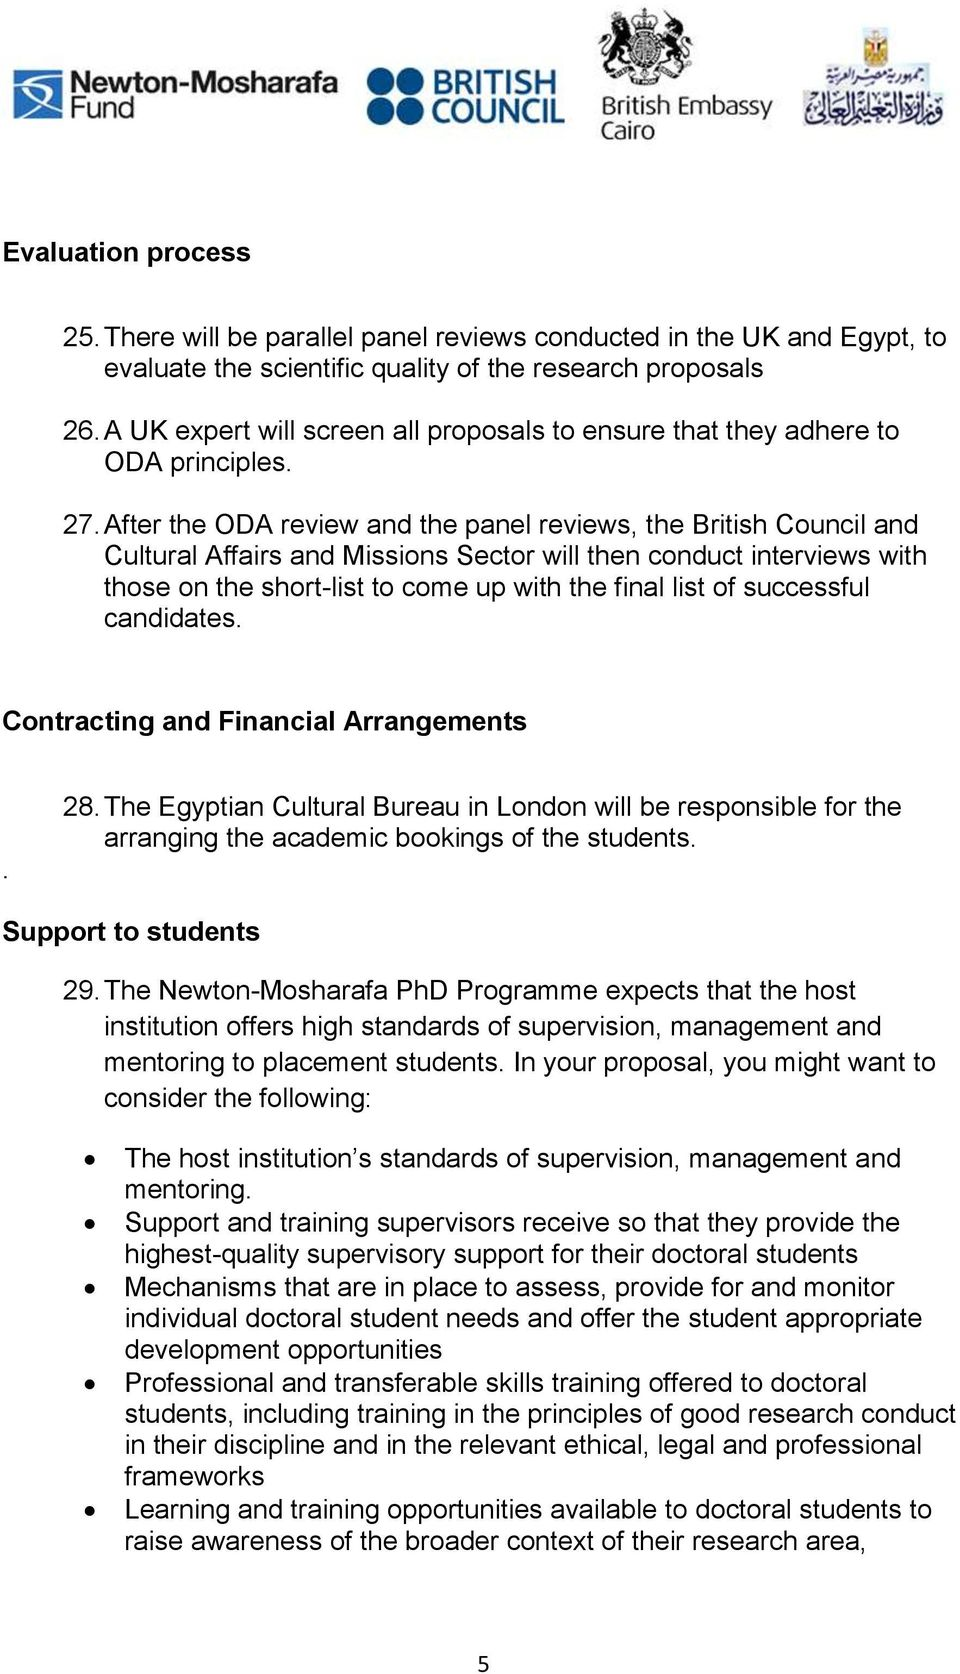 After the ODA review and the panel reviews, the British Council and Cultural Affairs and Missions Sector will then conduct interviews with those on the short-list to come up with the final list of